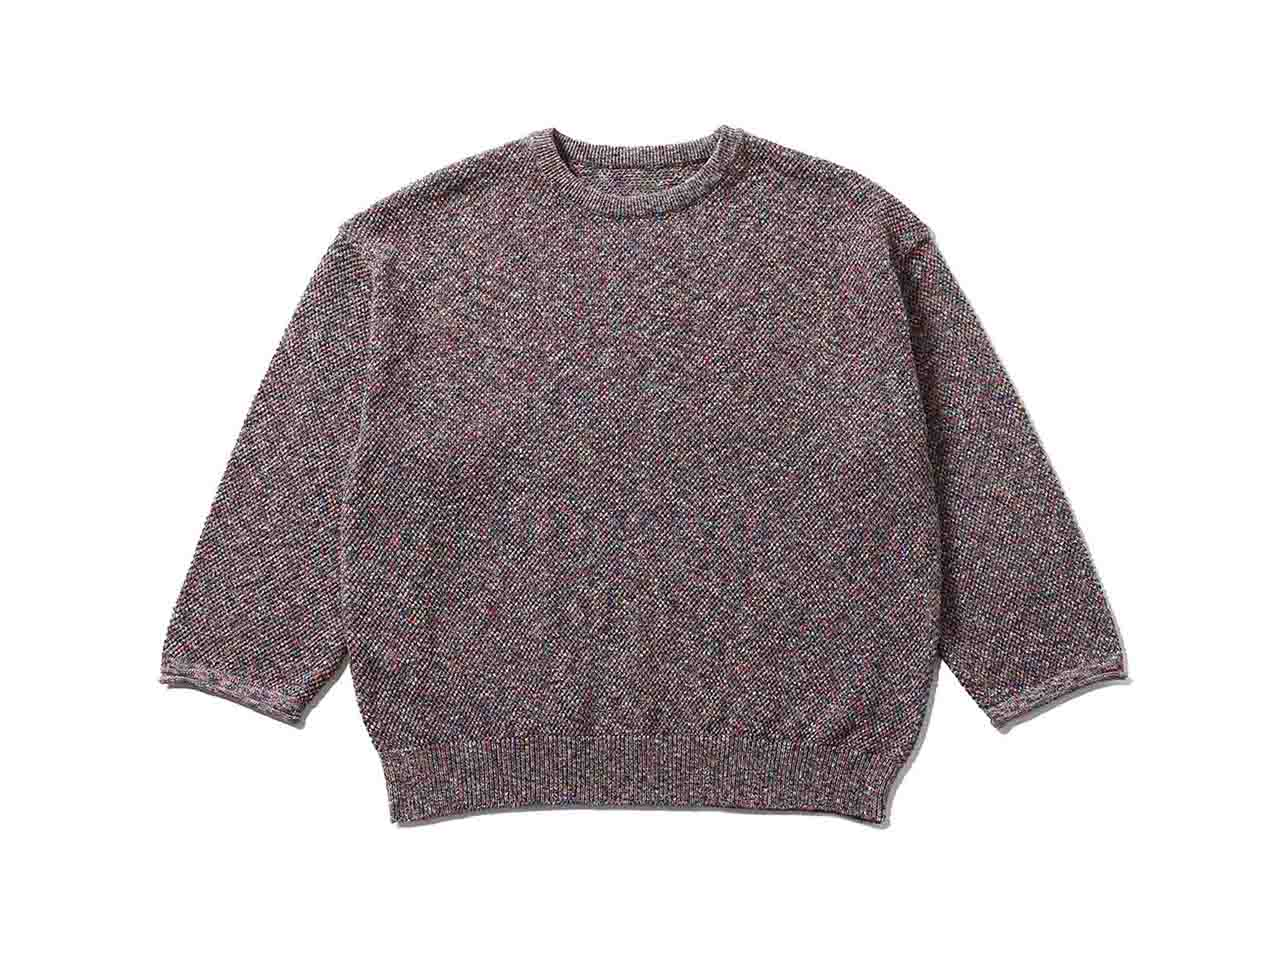 【10%OFF!】crepuscule multicolor moss stitch(2001-003)【クレプスキュール】【メンズファッション】【トップス】